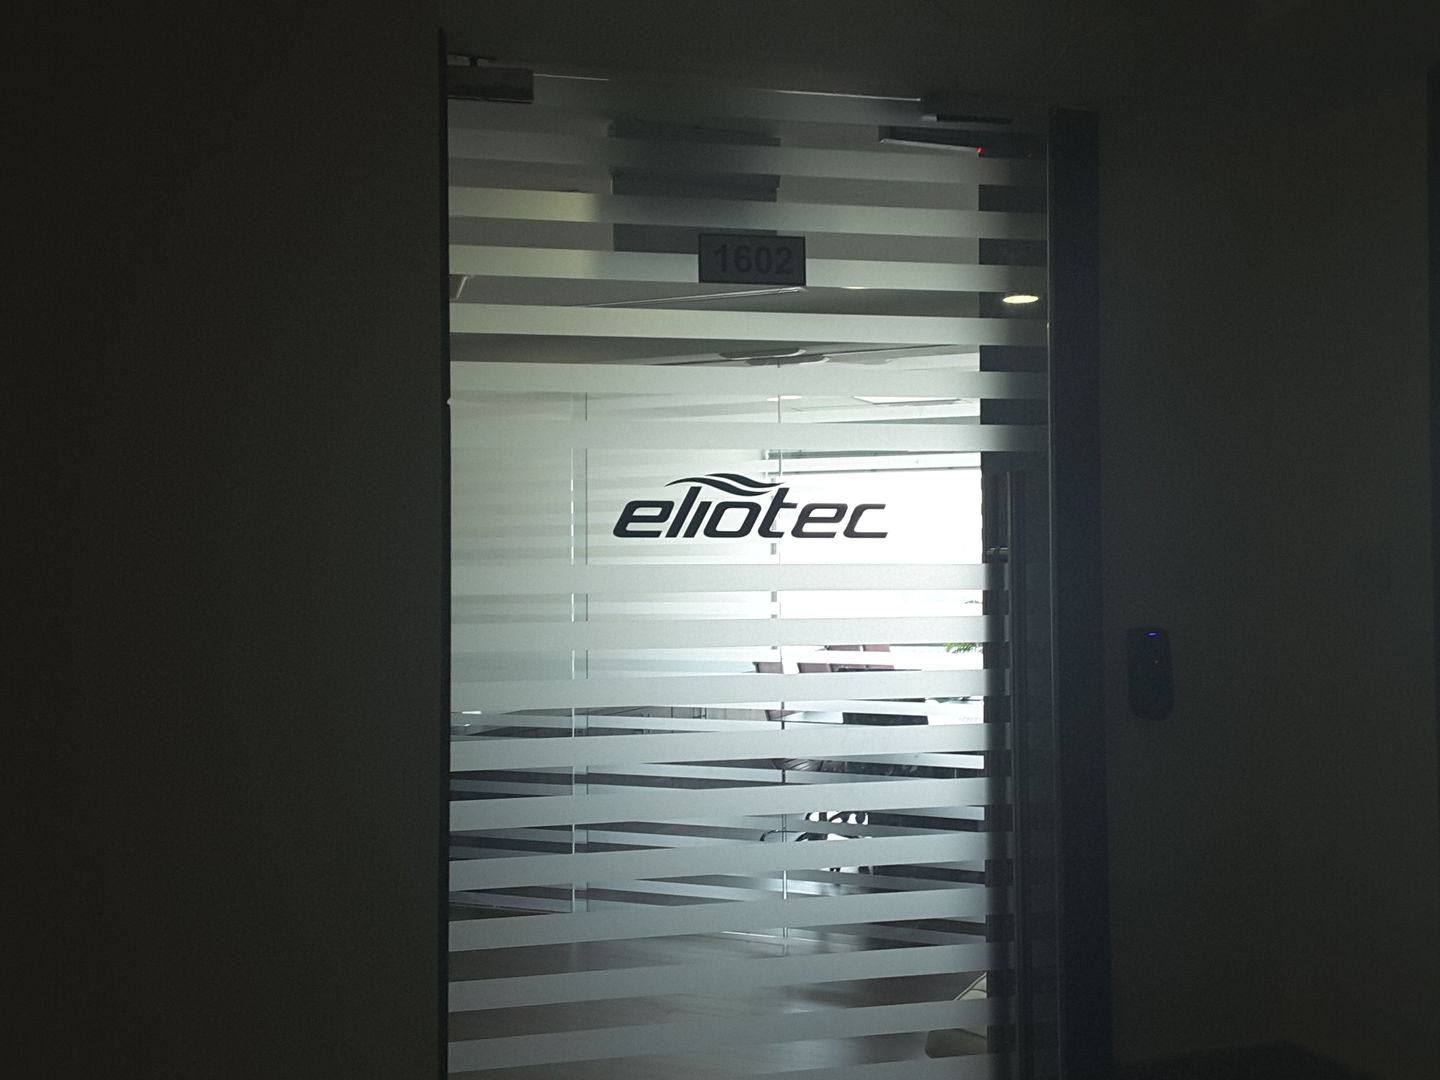 HiDubai-business-eliotec-construction-heavy-industries-construction-renovation-business-bay-dubai-2